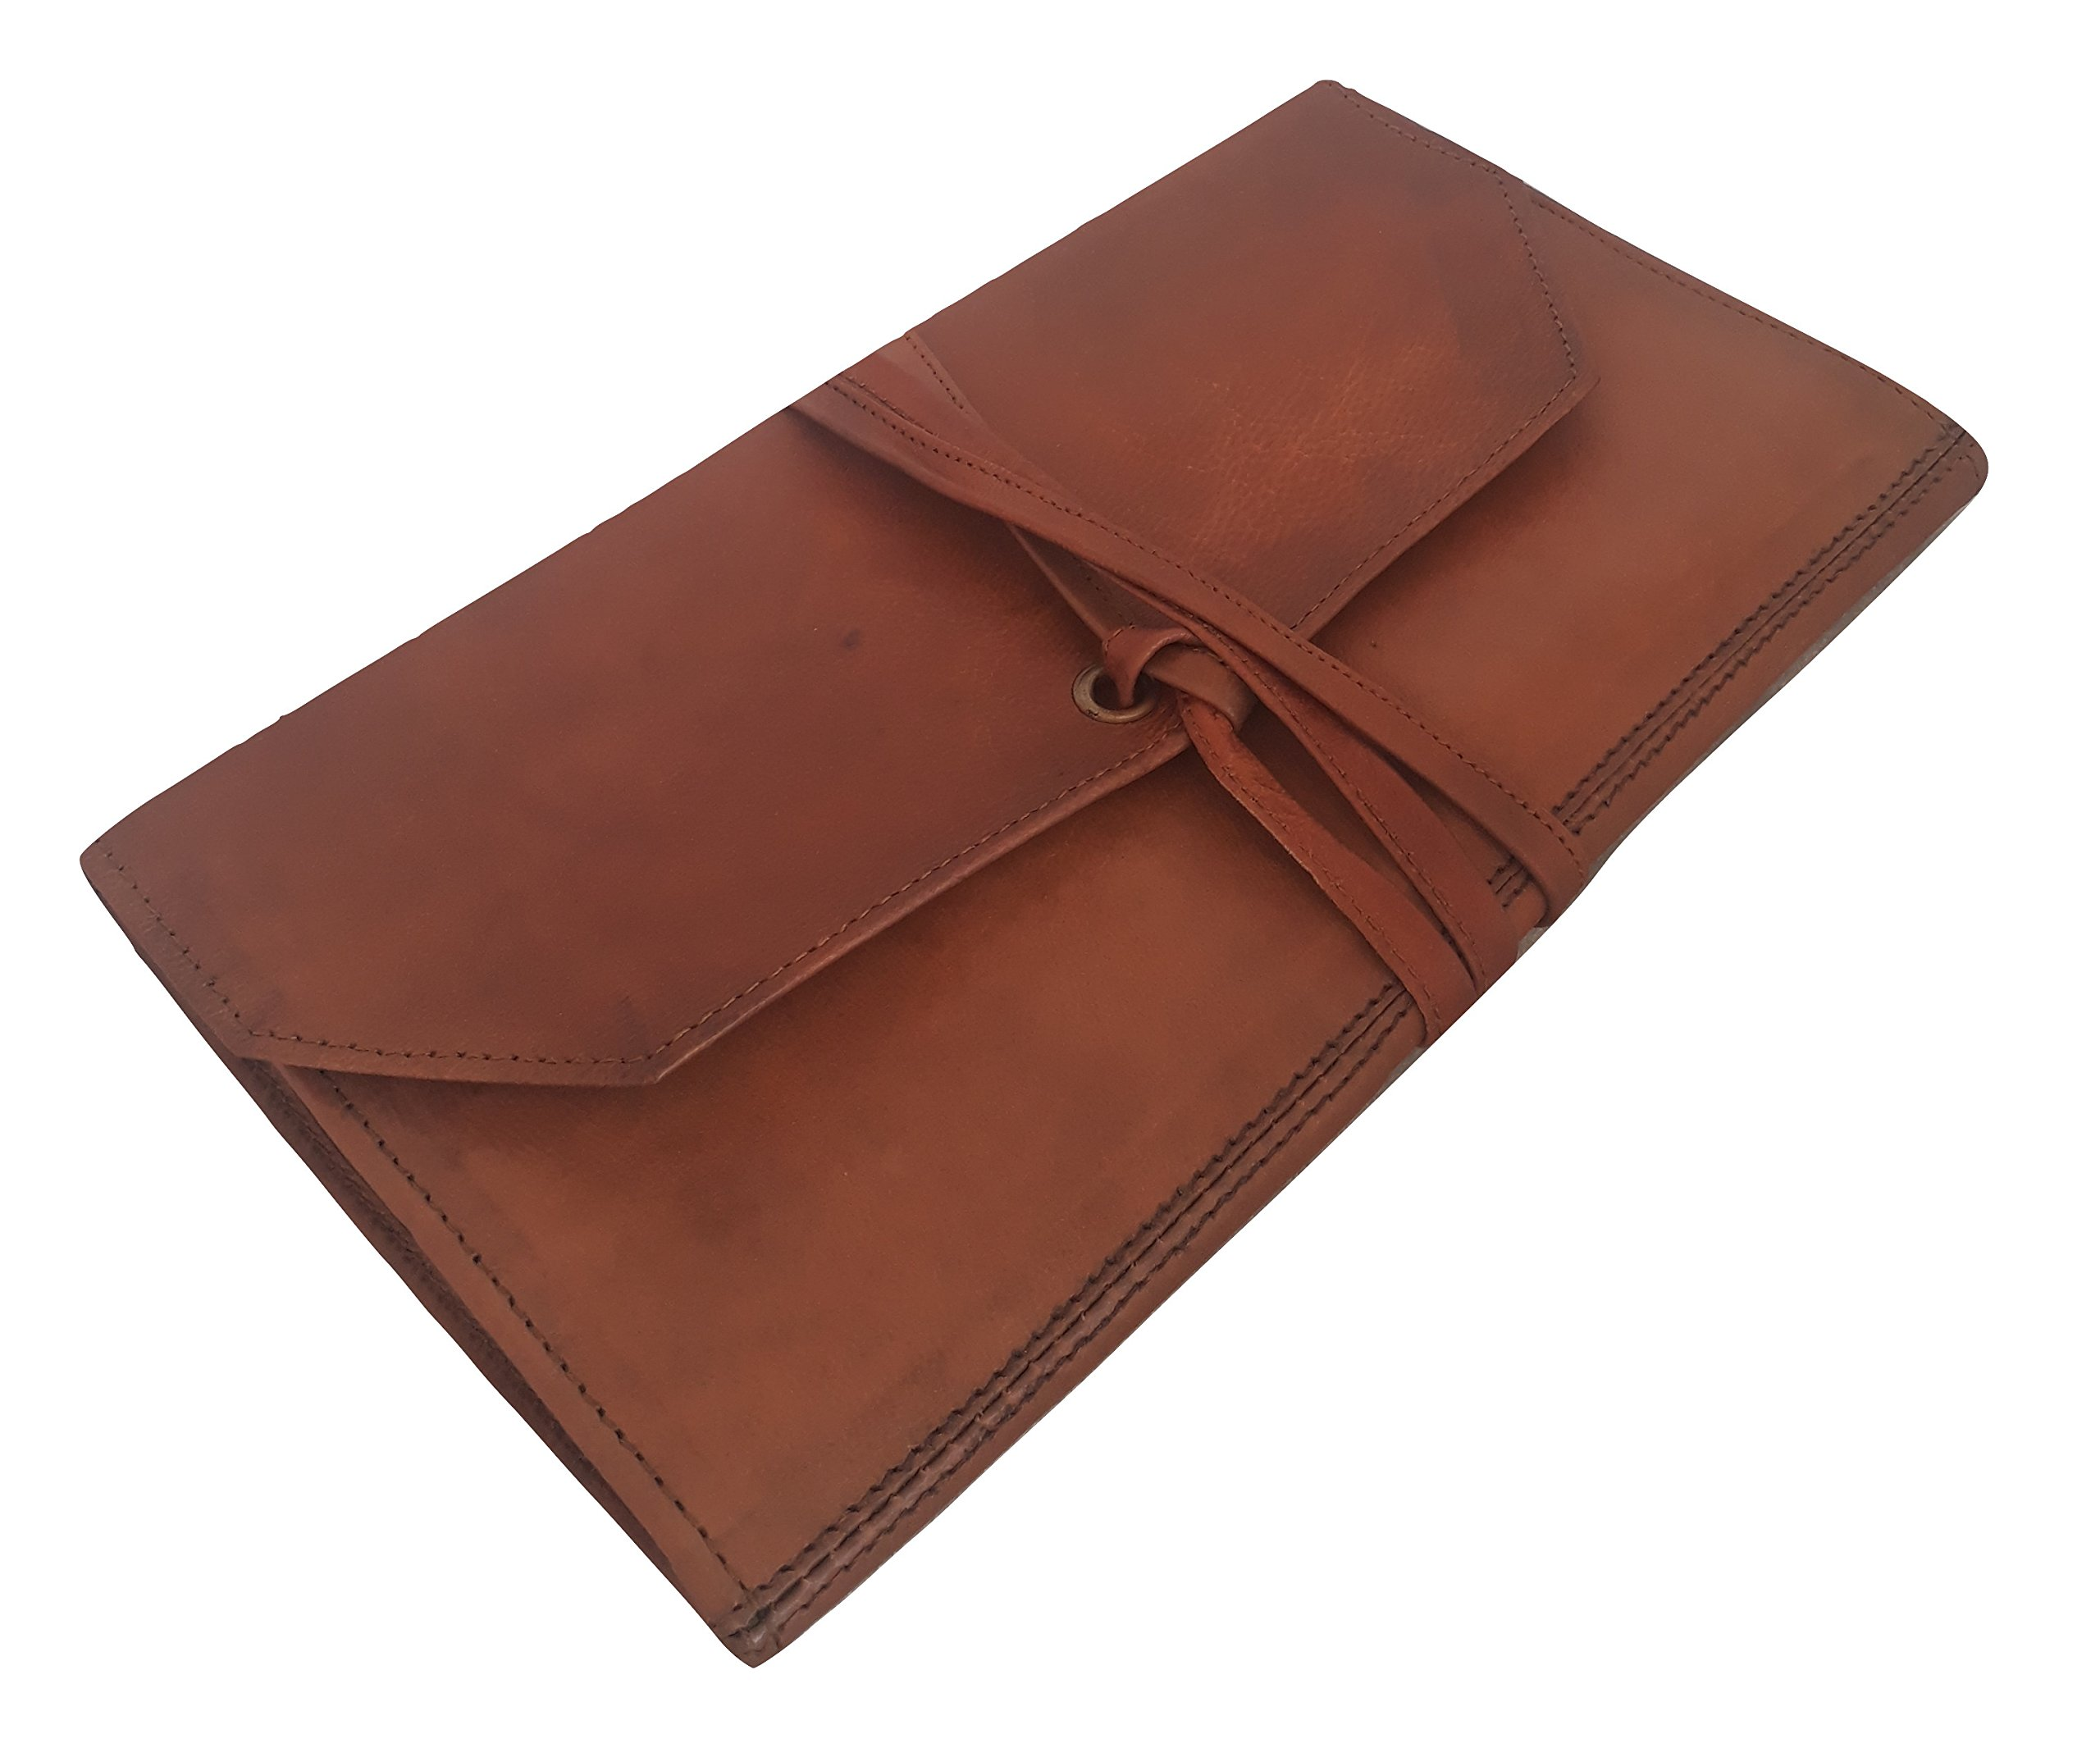 Real Leather Pen case Pencil Holder Stationery Pouch College Unisex Brown for Students Artists Great Organiser for Everyday Use